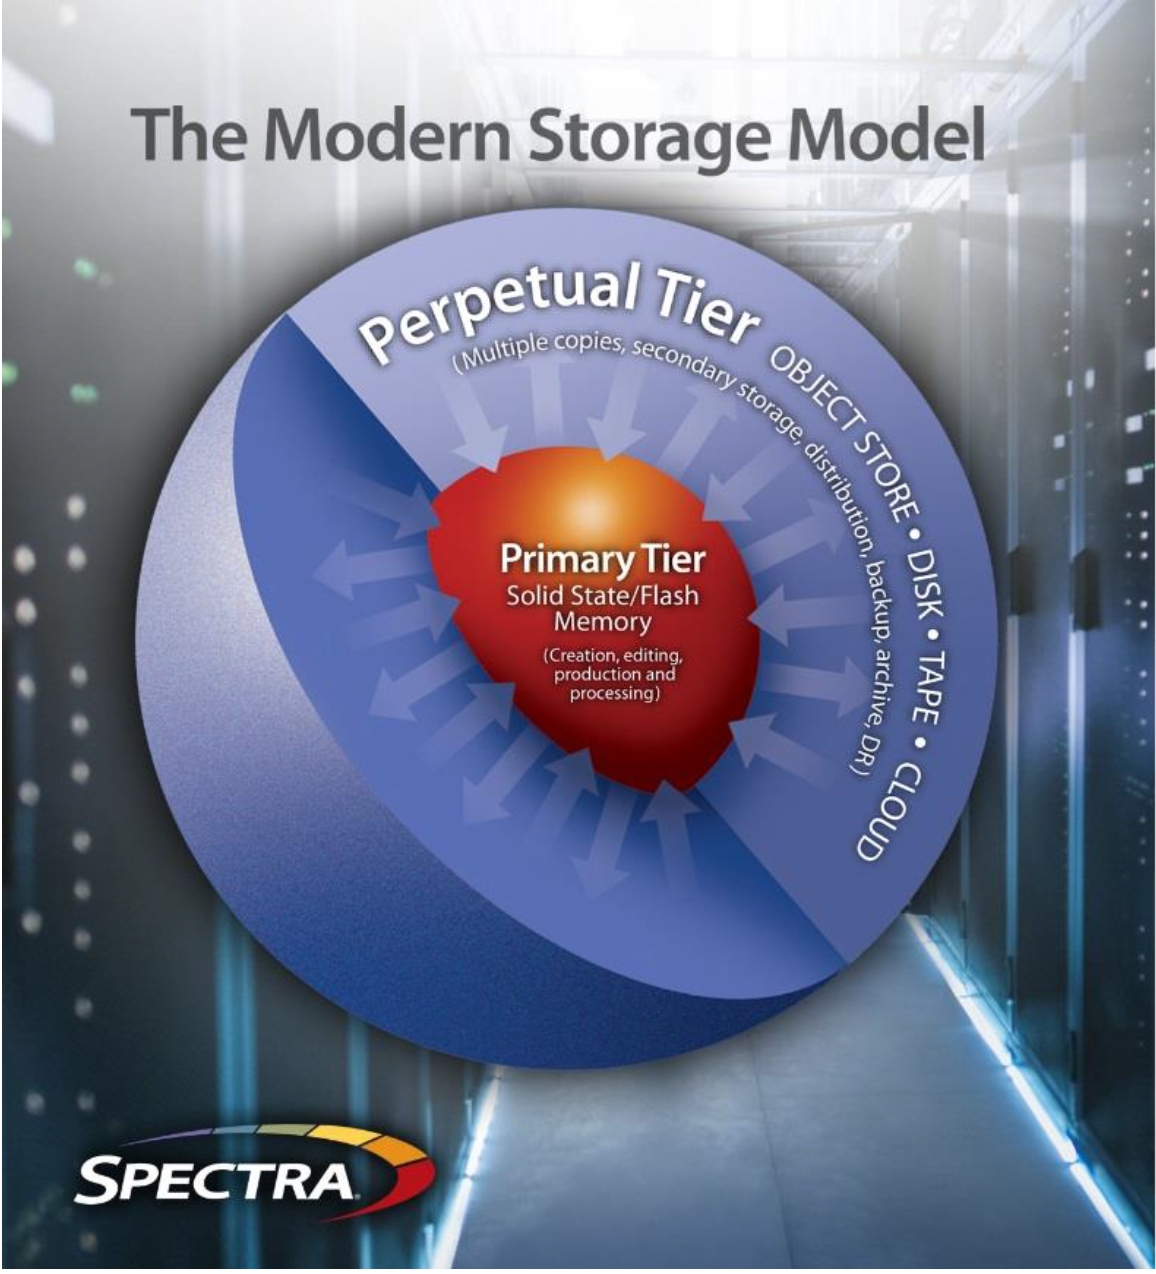 StorCycle: The Modern Storage Model